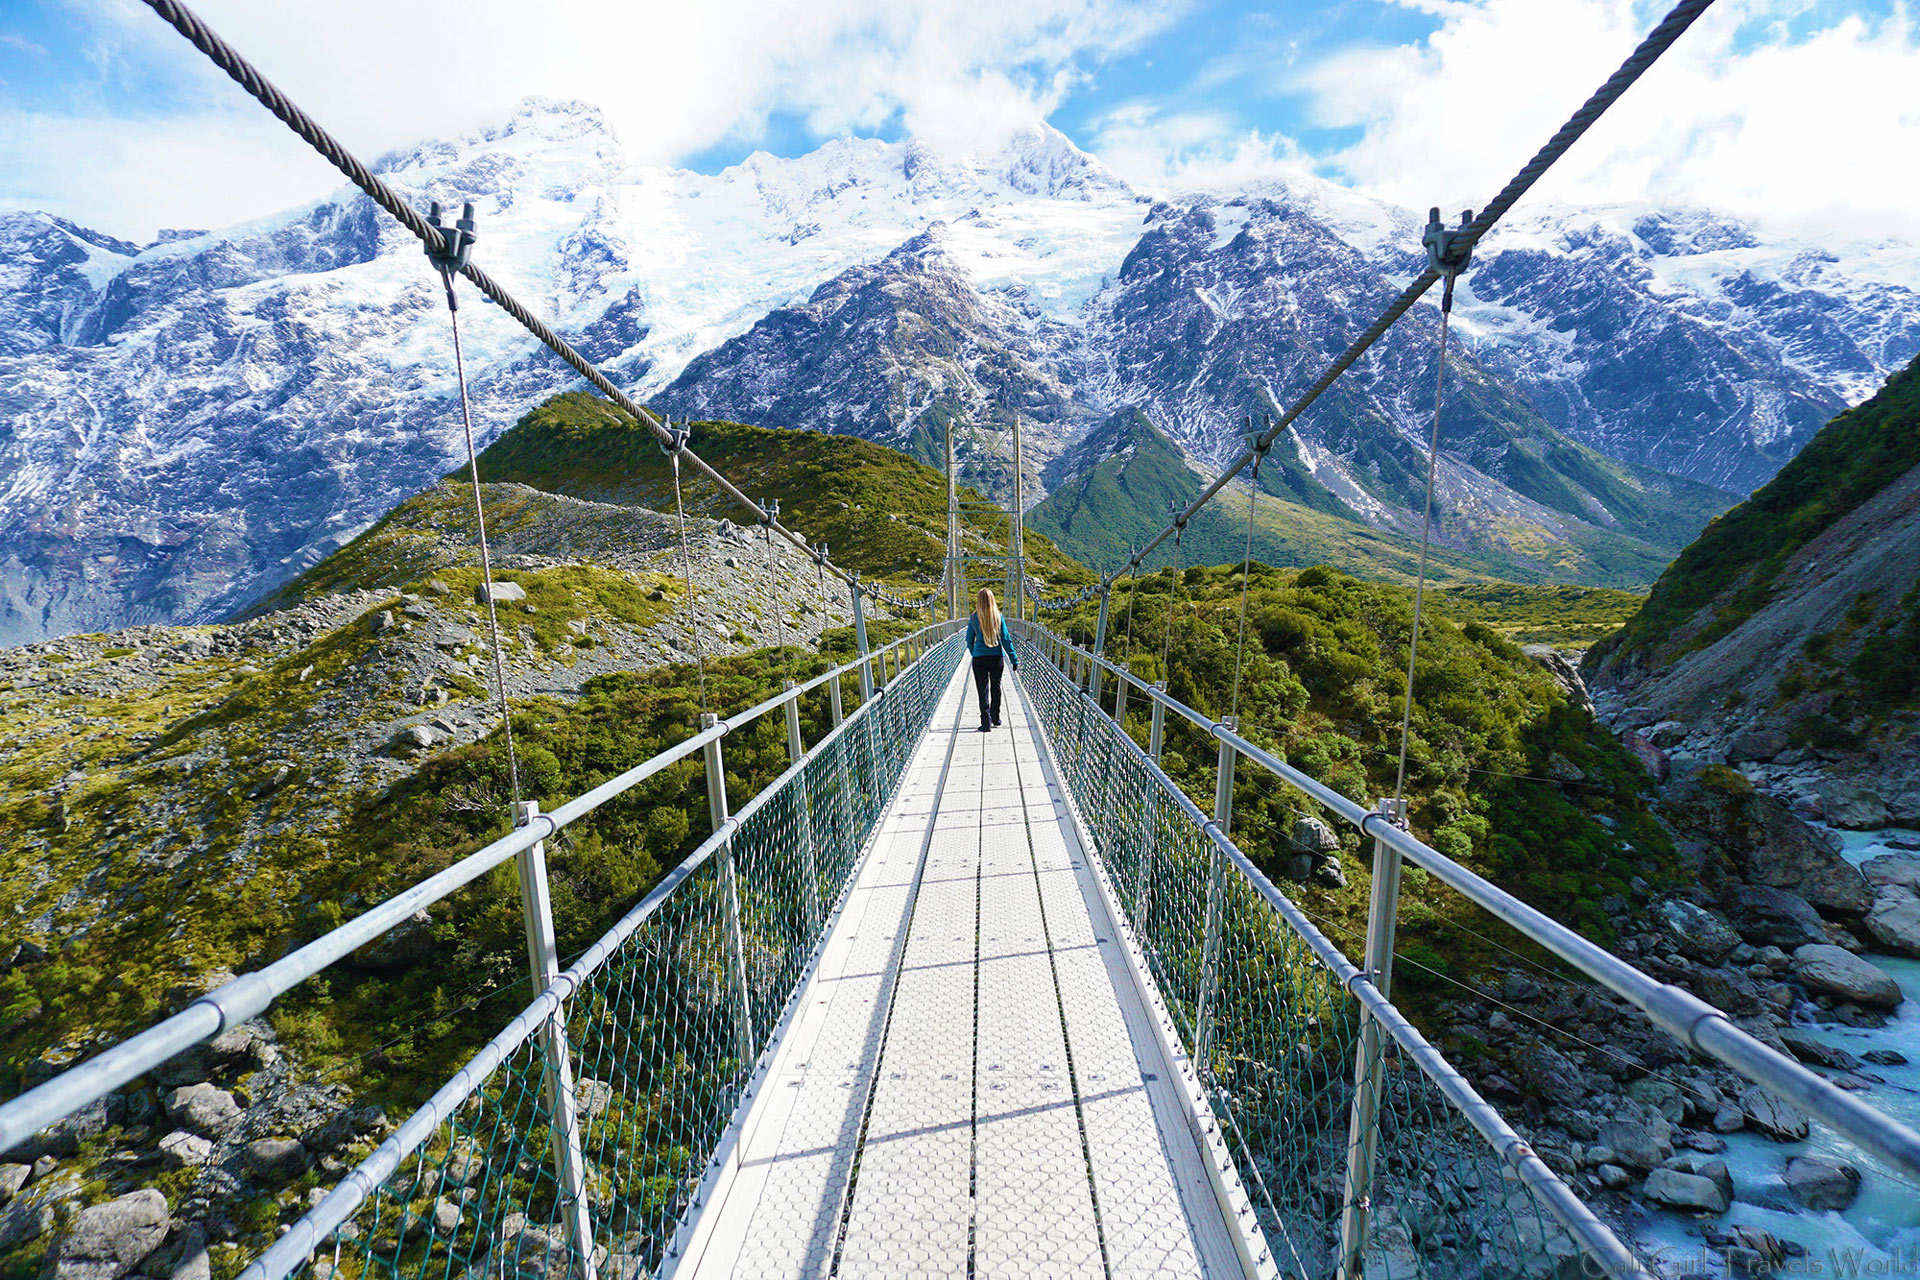 CaliGirlTravelsWorld walking along a suspension bridge on Mount Cook/Aoraki along the Hooker Valley Track.